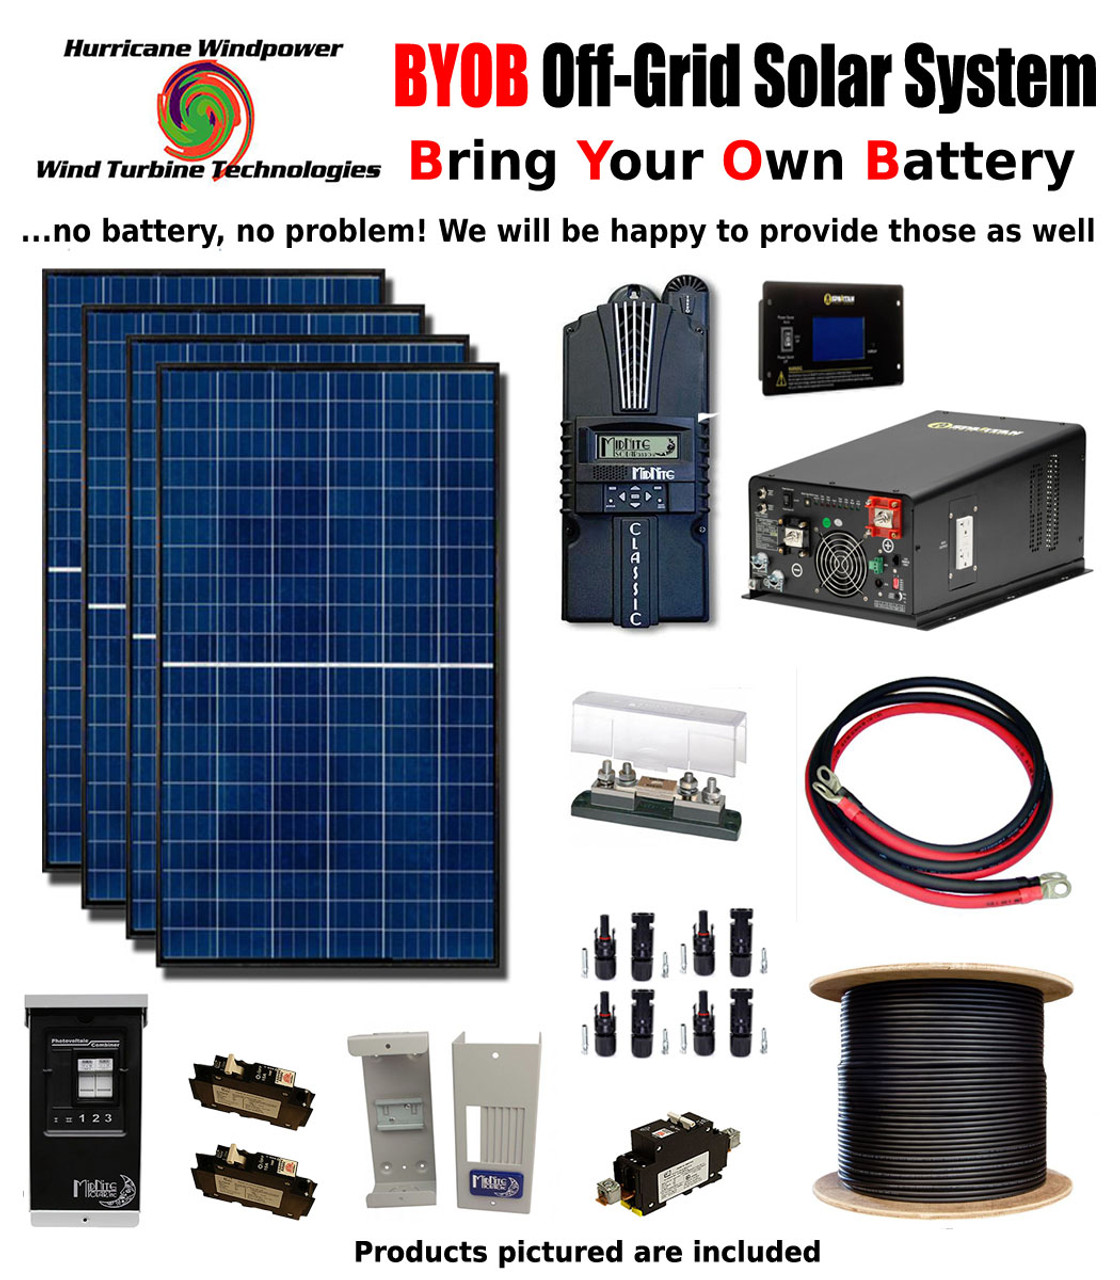 BYOB Off-Grid 1.1KW 12V Solar Panel Kit Tiny House PV System Midnite Classic 150 w/ 3300 Watt 12V Inverter/Charger